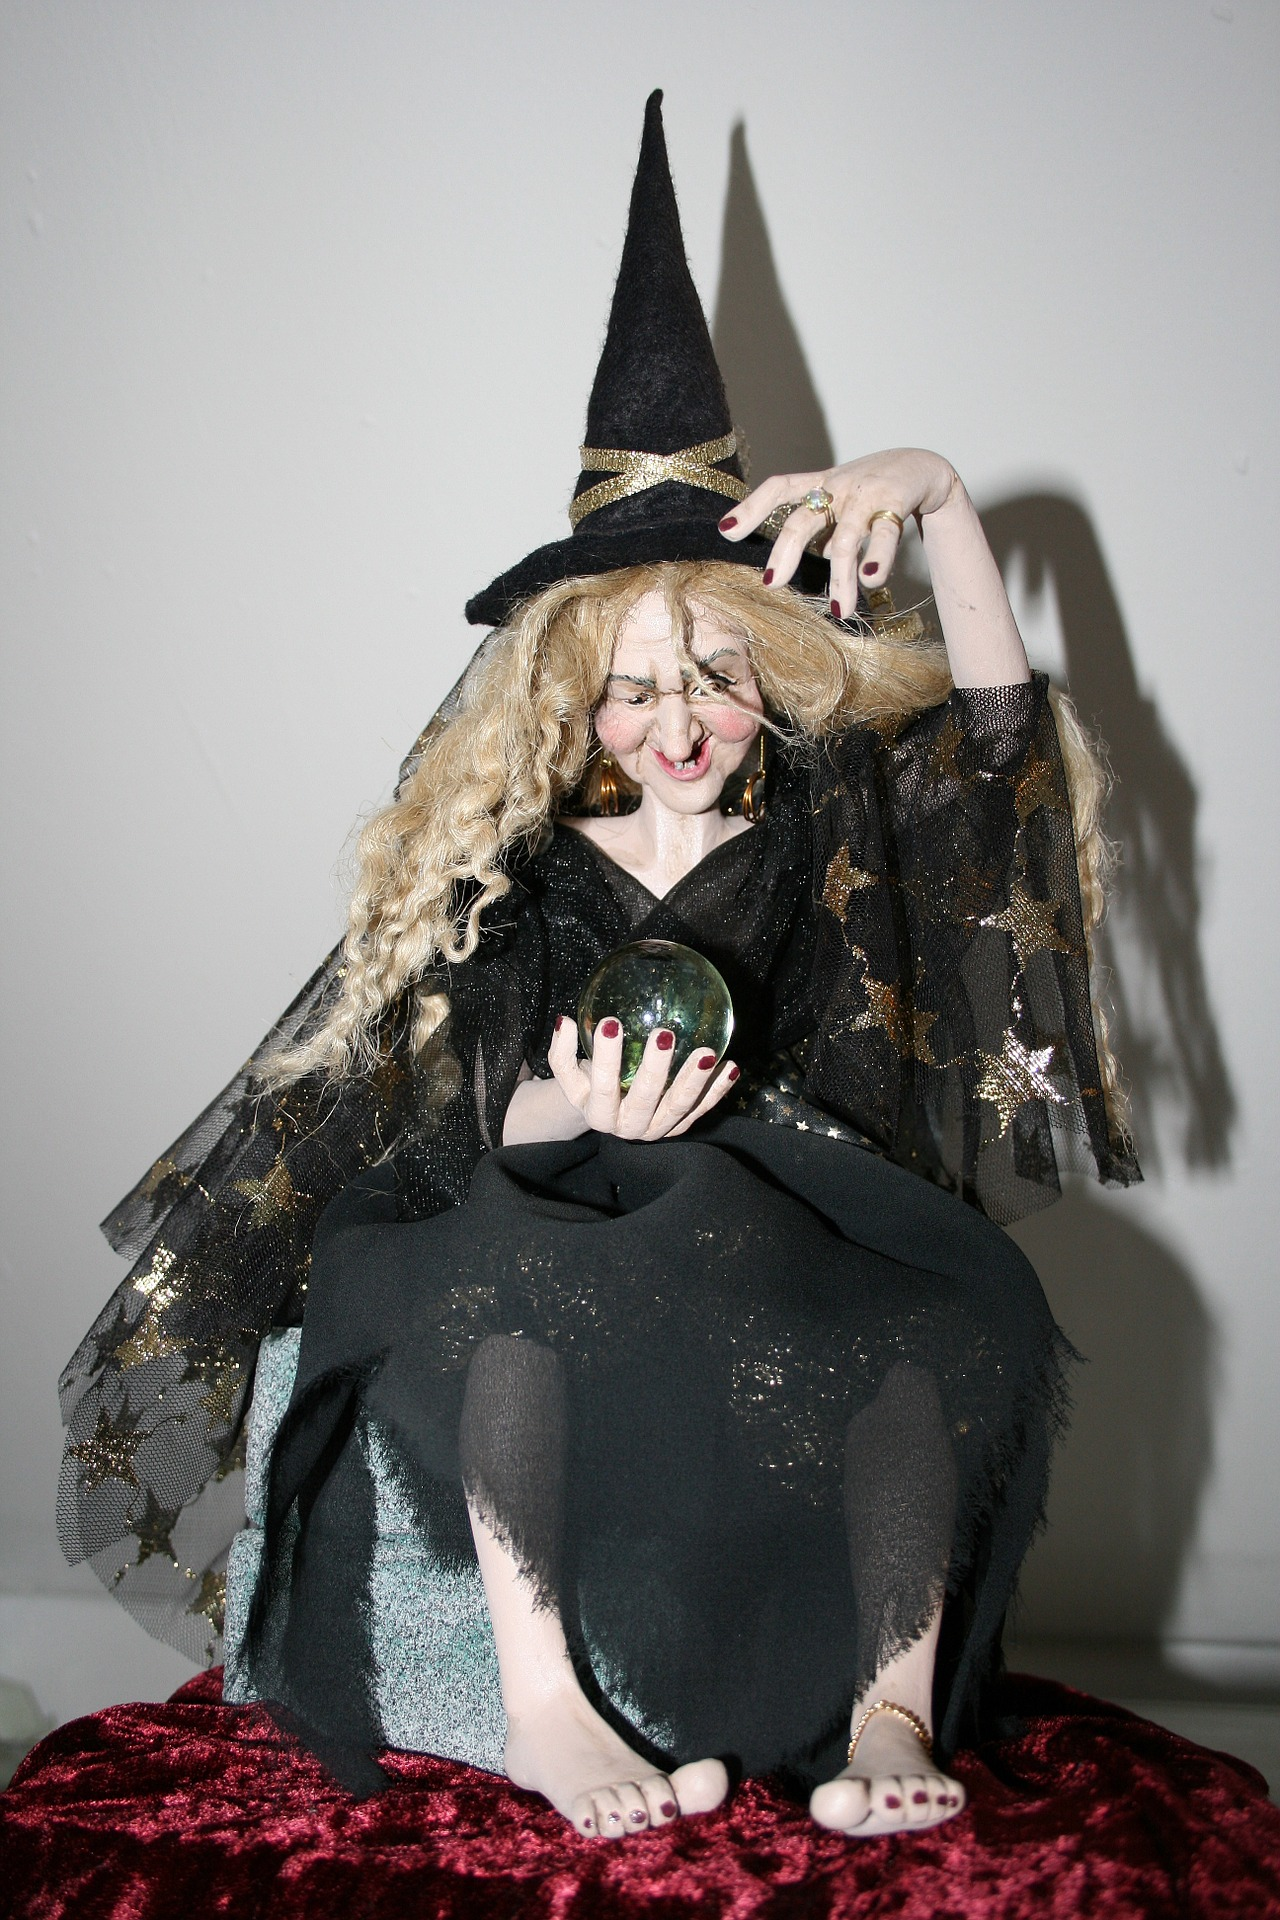 the-witch-888272_1920